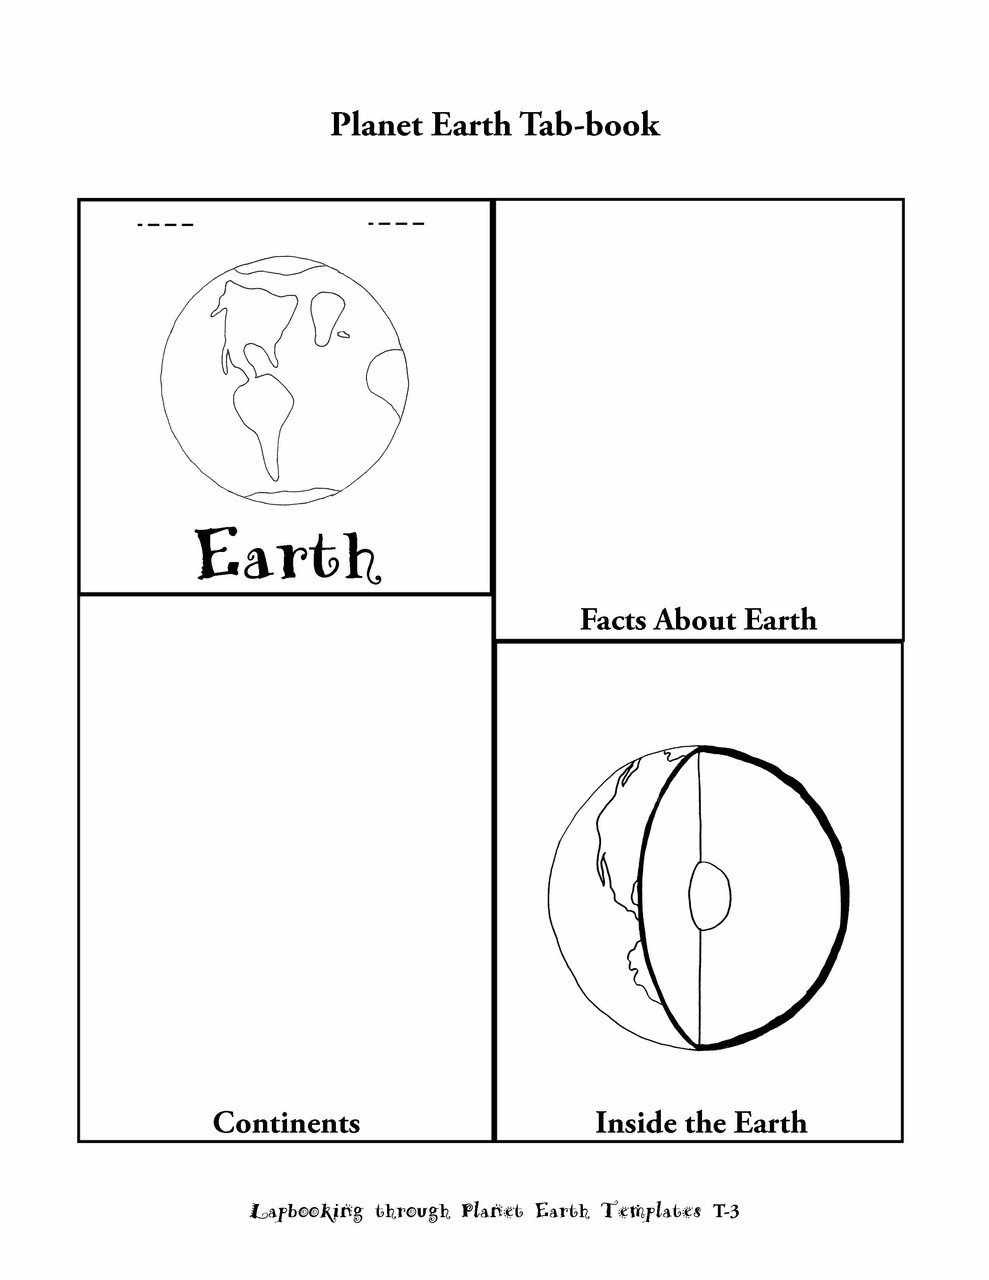 Lapbooking through planet earth a science lapbook science lapbook lapbooking through planet earth ebook fandeluxe Choice Image